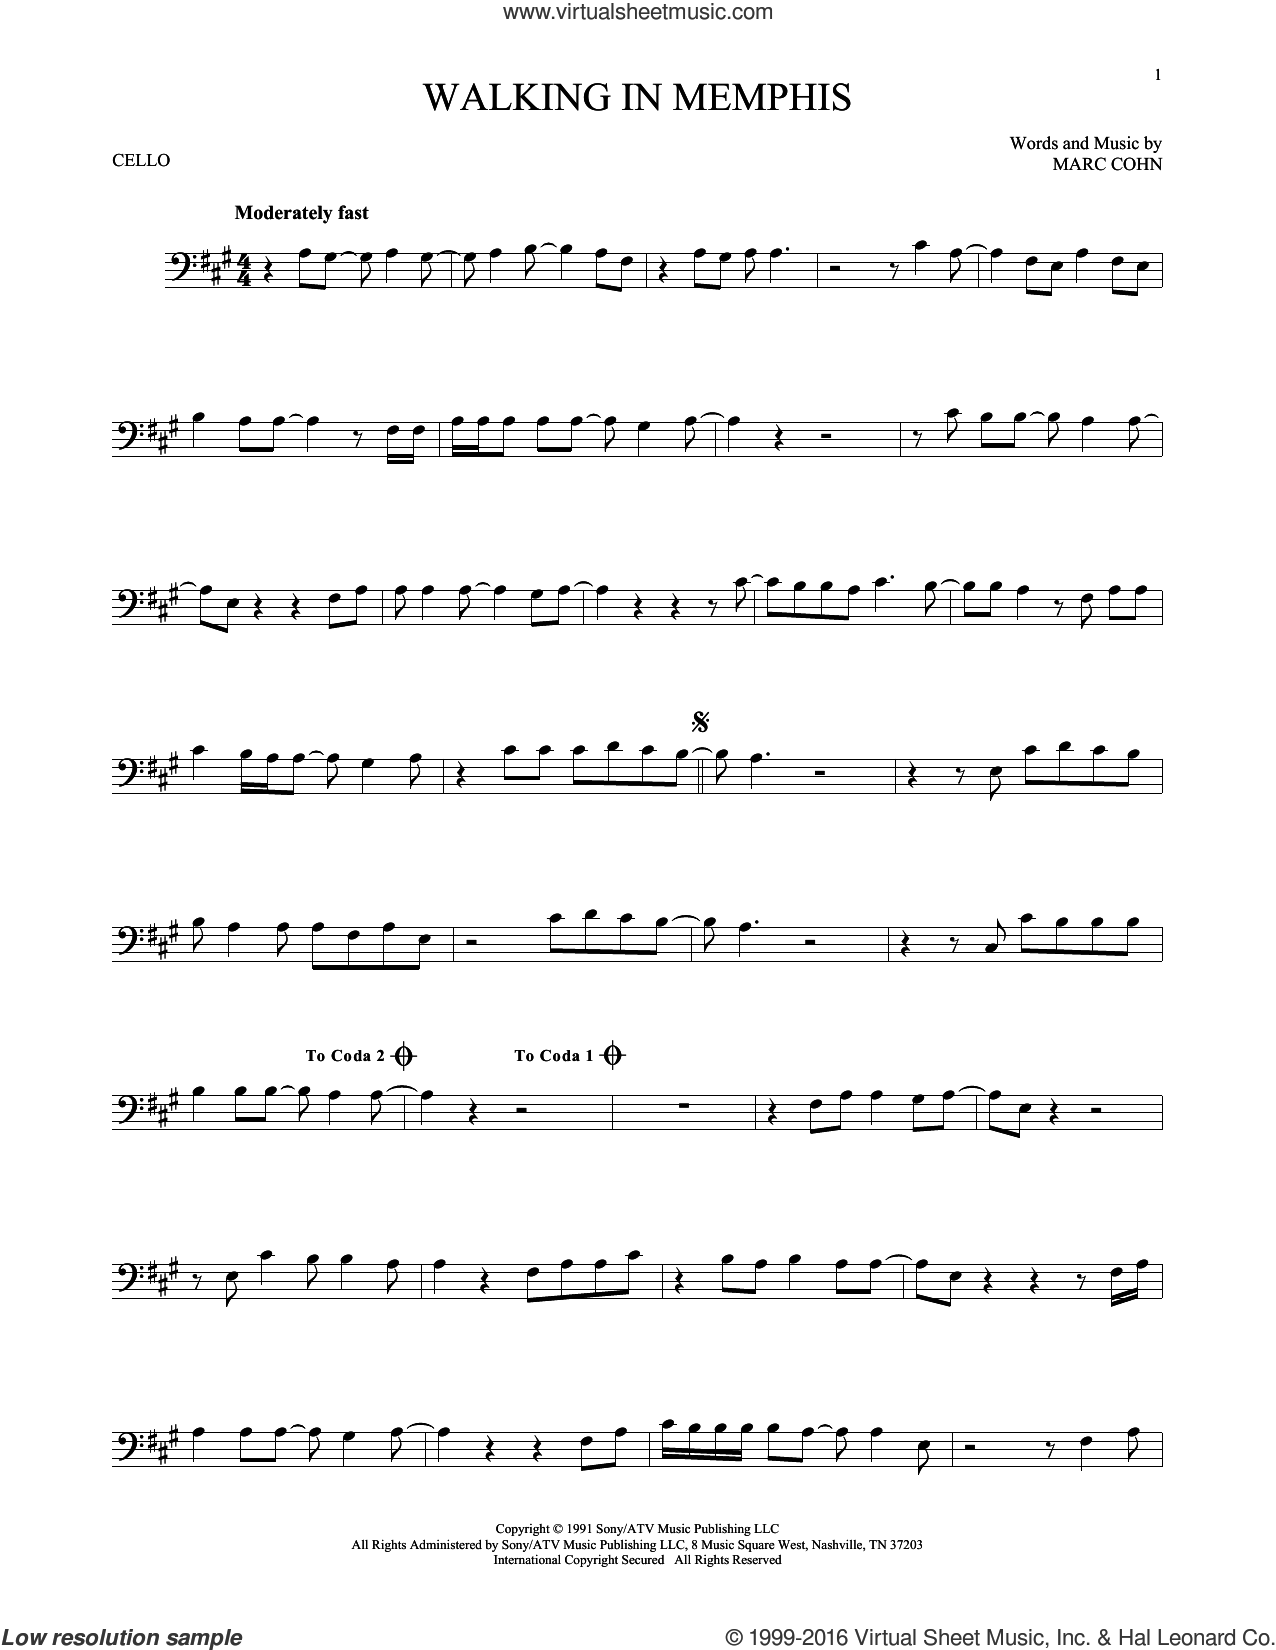 Walking In Memphis sheet music for cello solo by Marc Cohn